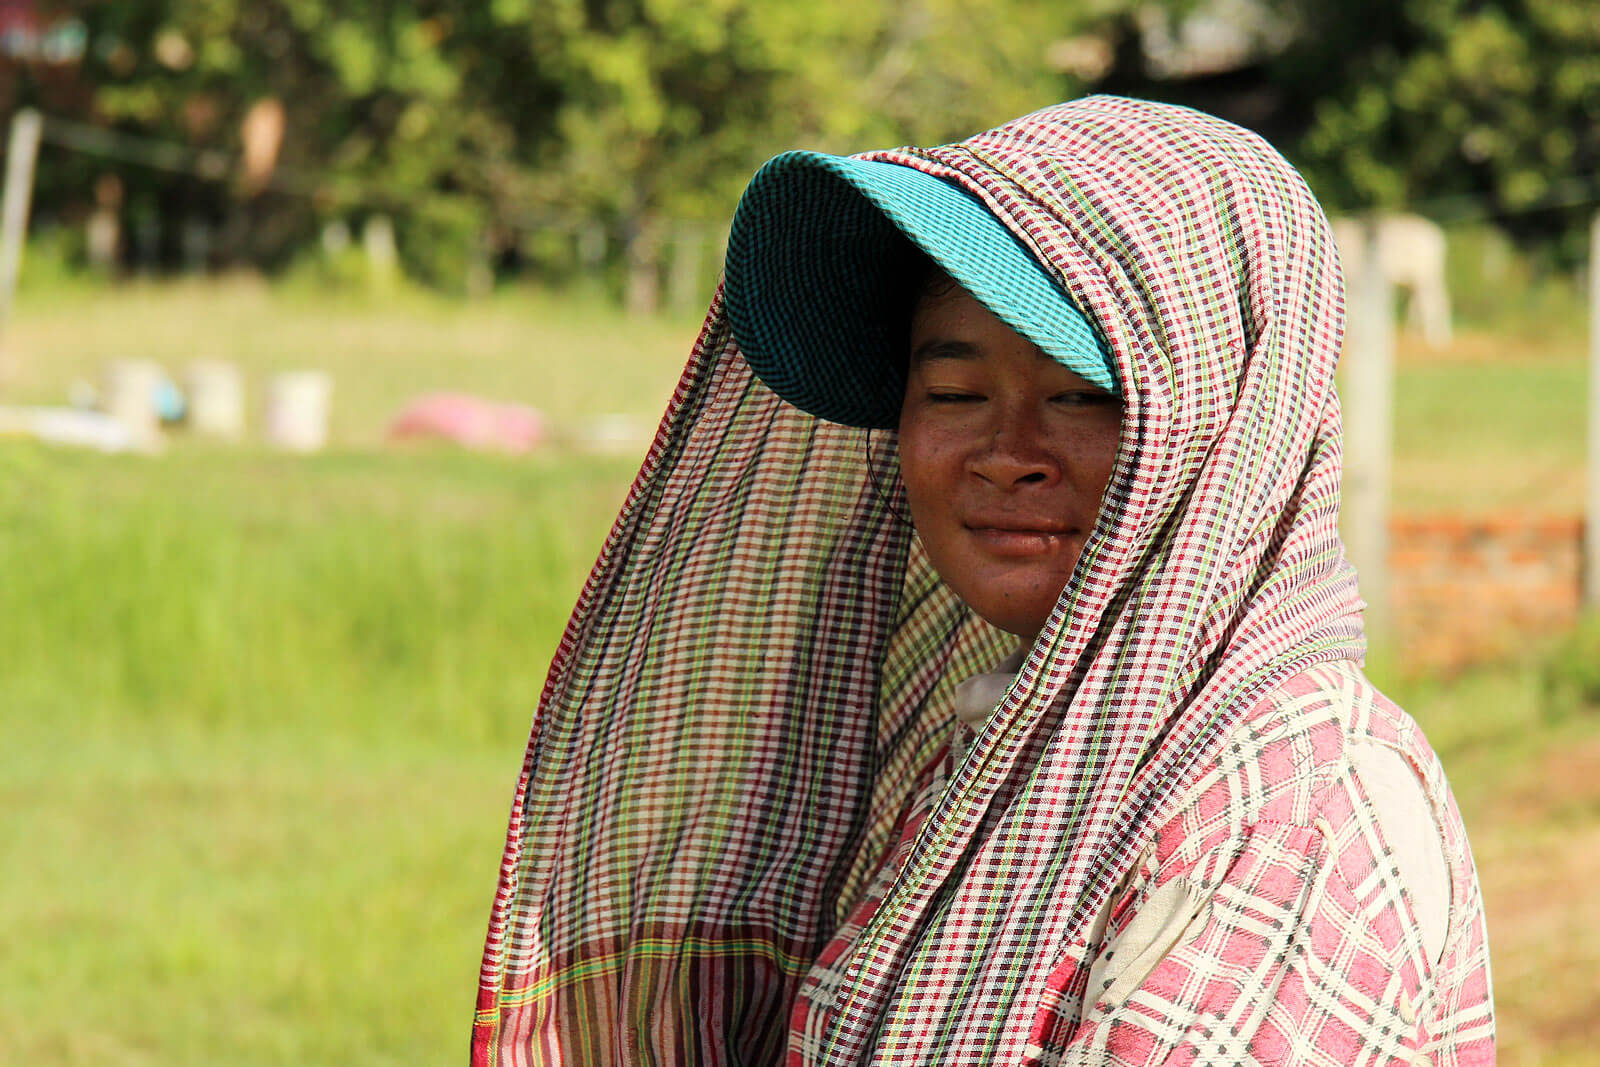 cambodia-smile-duck-farmer